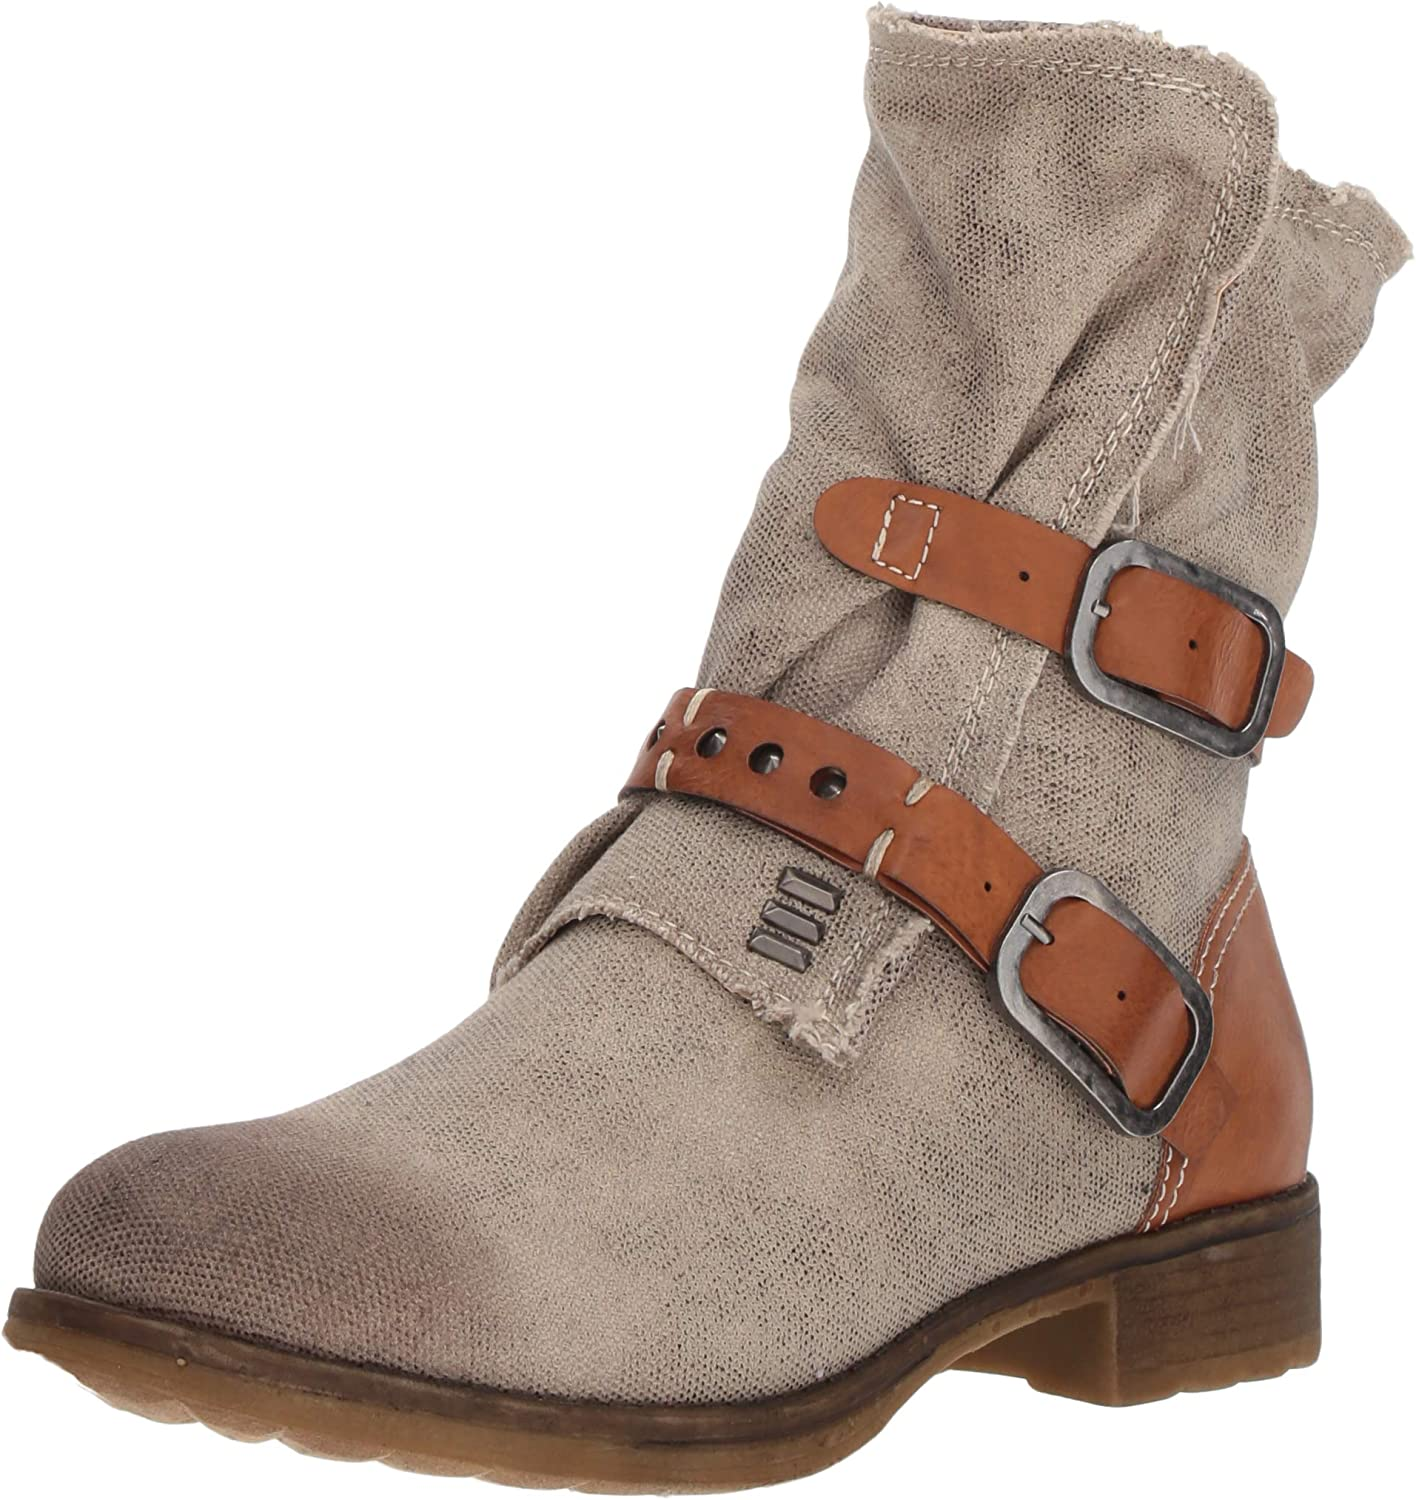 Dirty Laundry Women's Tycen Motorcycle Boot